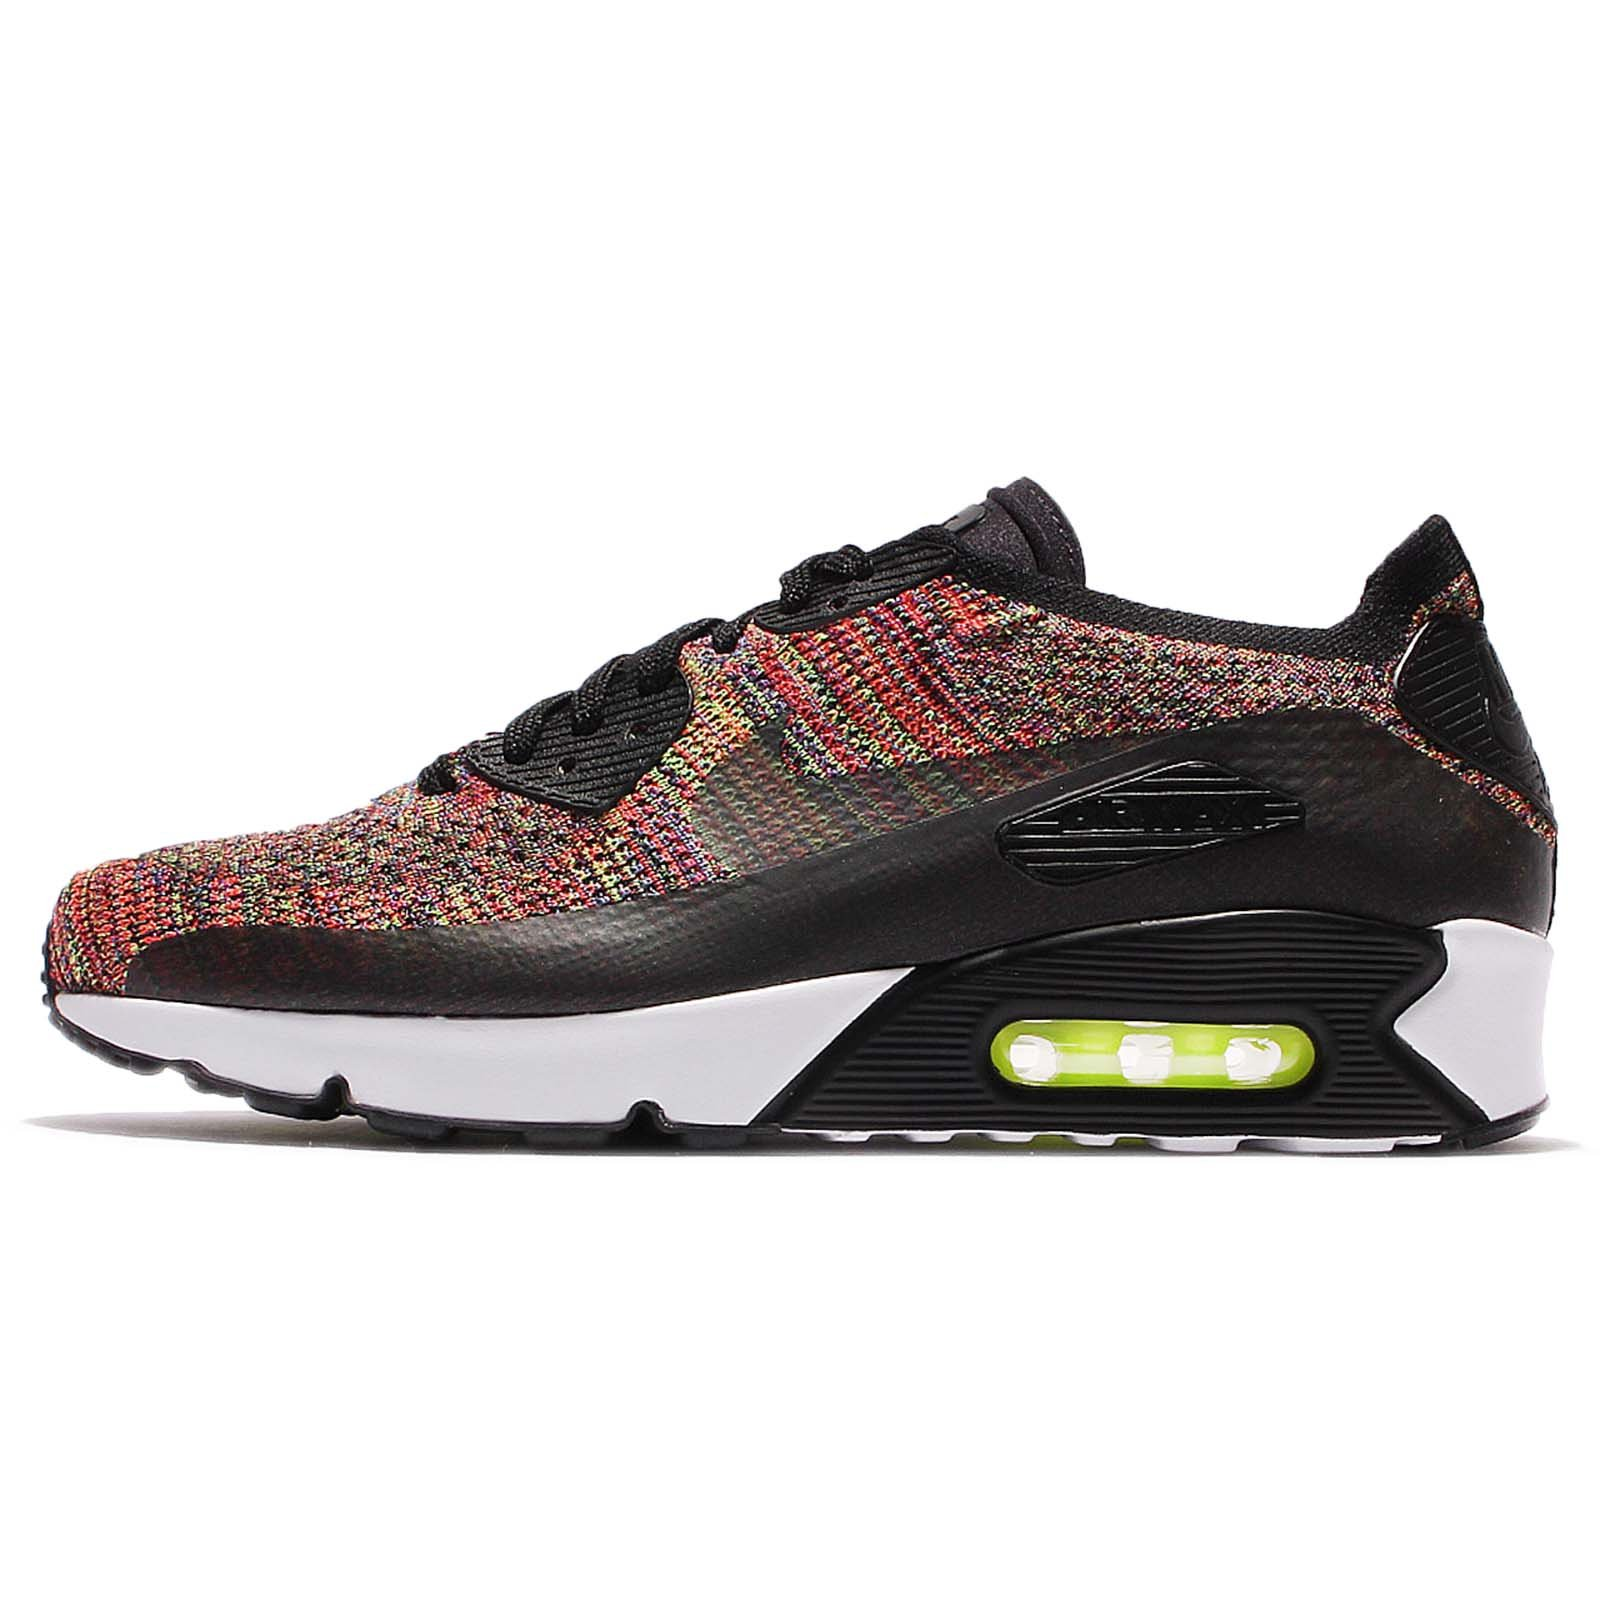 newest 5a8a4 3e0cf Galleon - NIKE Men s Air Max 90 Ultra 2.0 Flyknit Running Shoe (9.5 D(M) US,  Black)